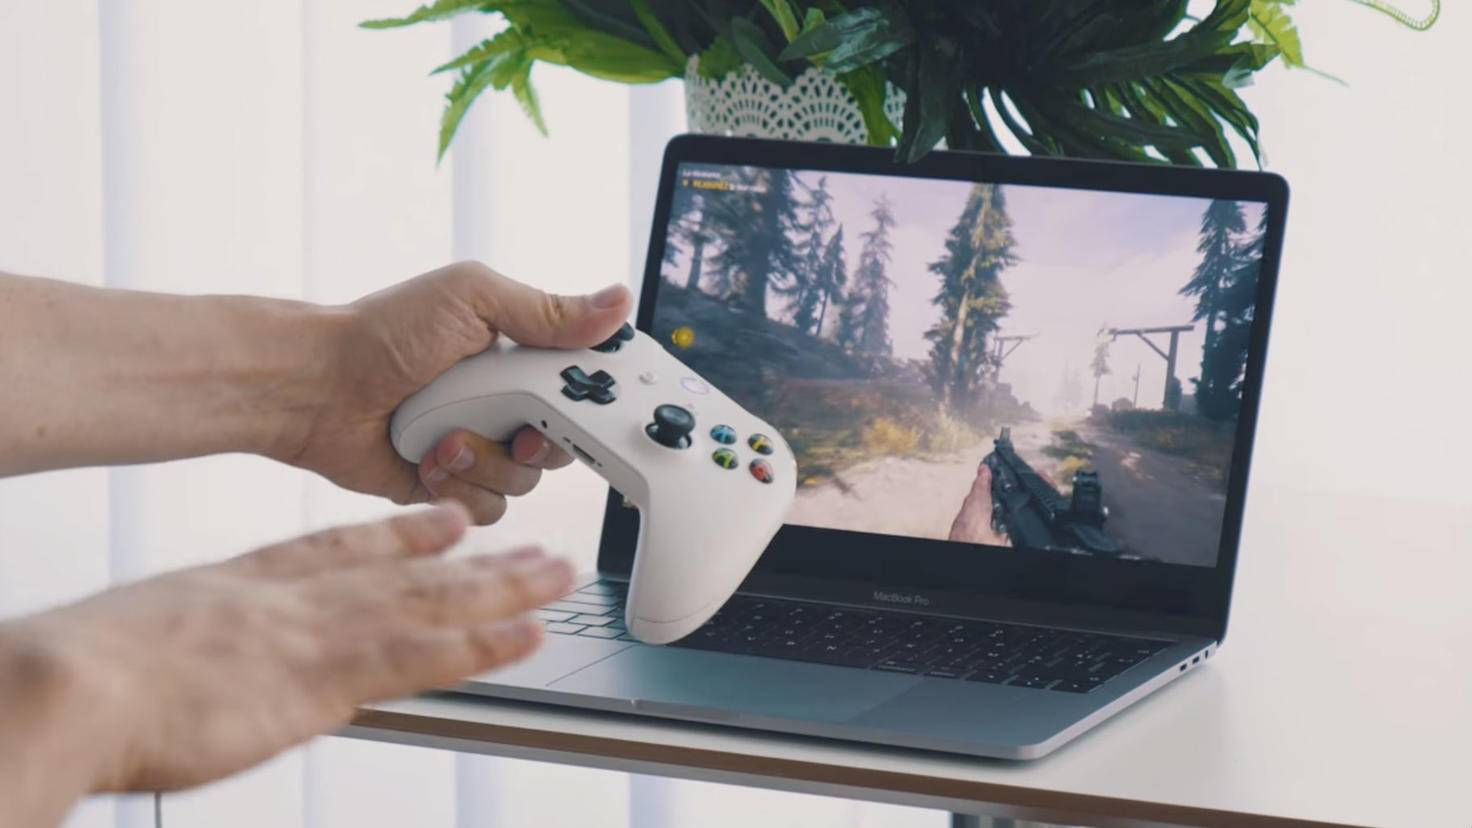 shadow-blade-macbook-xbox-controller-video